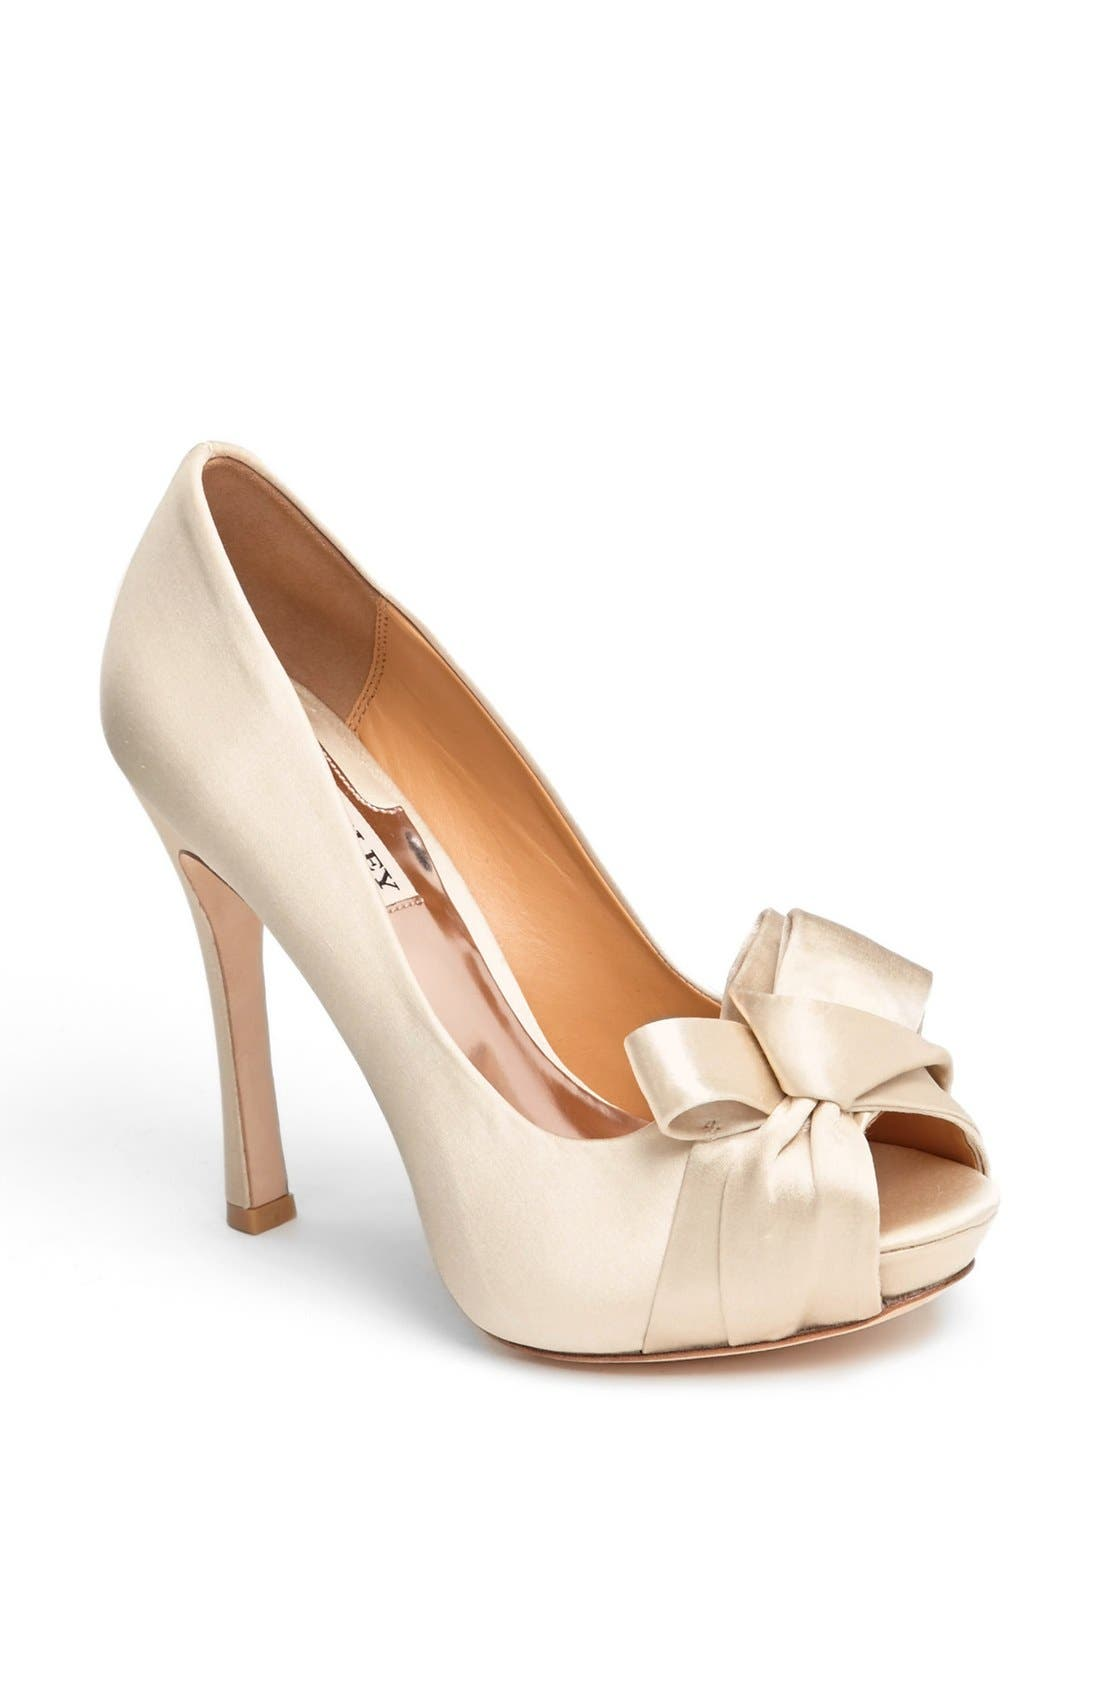 Main Image - Badgley Mischka 'Pasquel' Pump